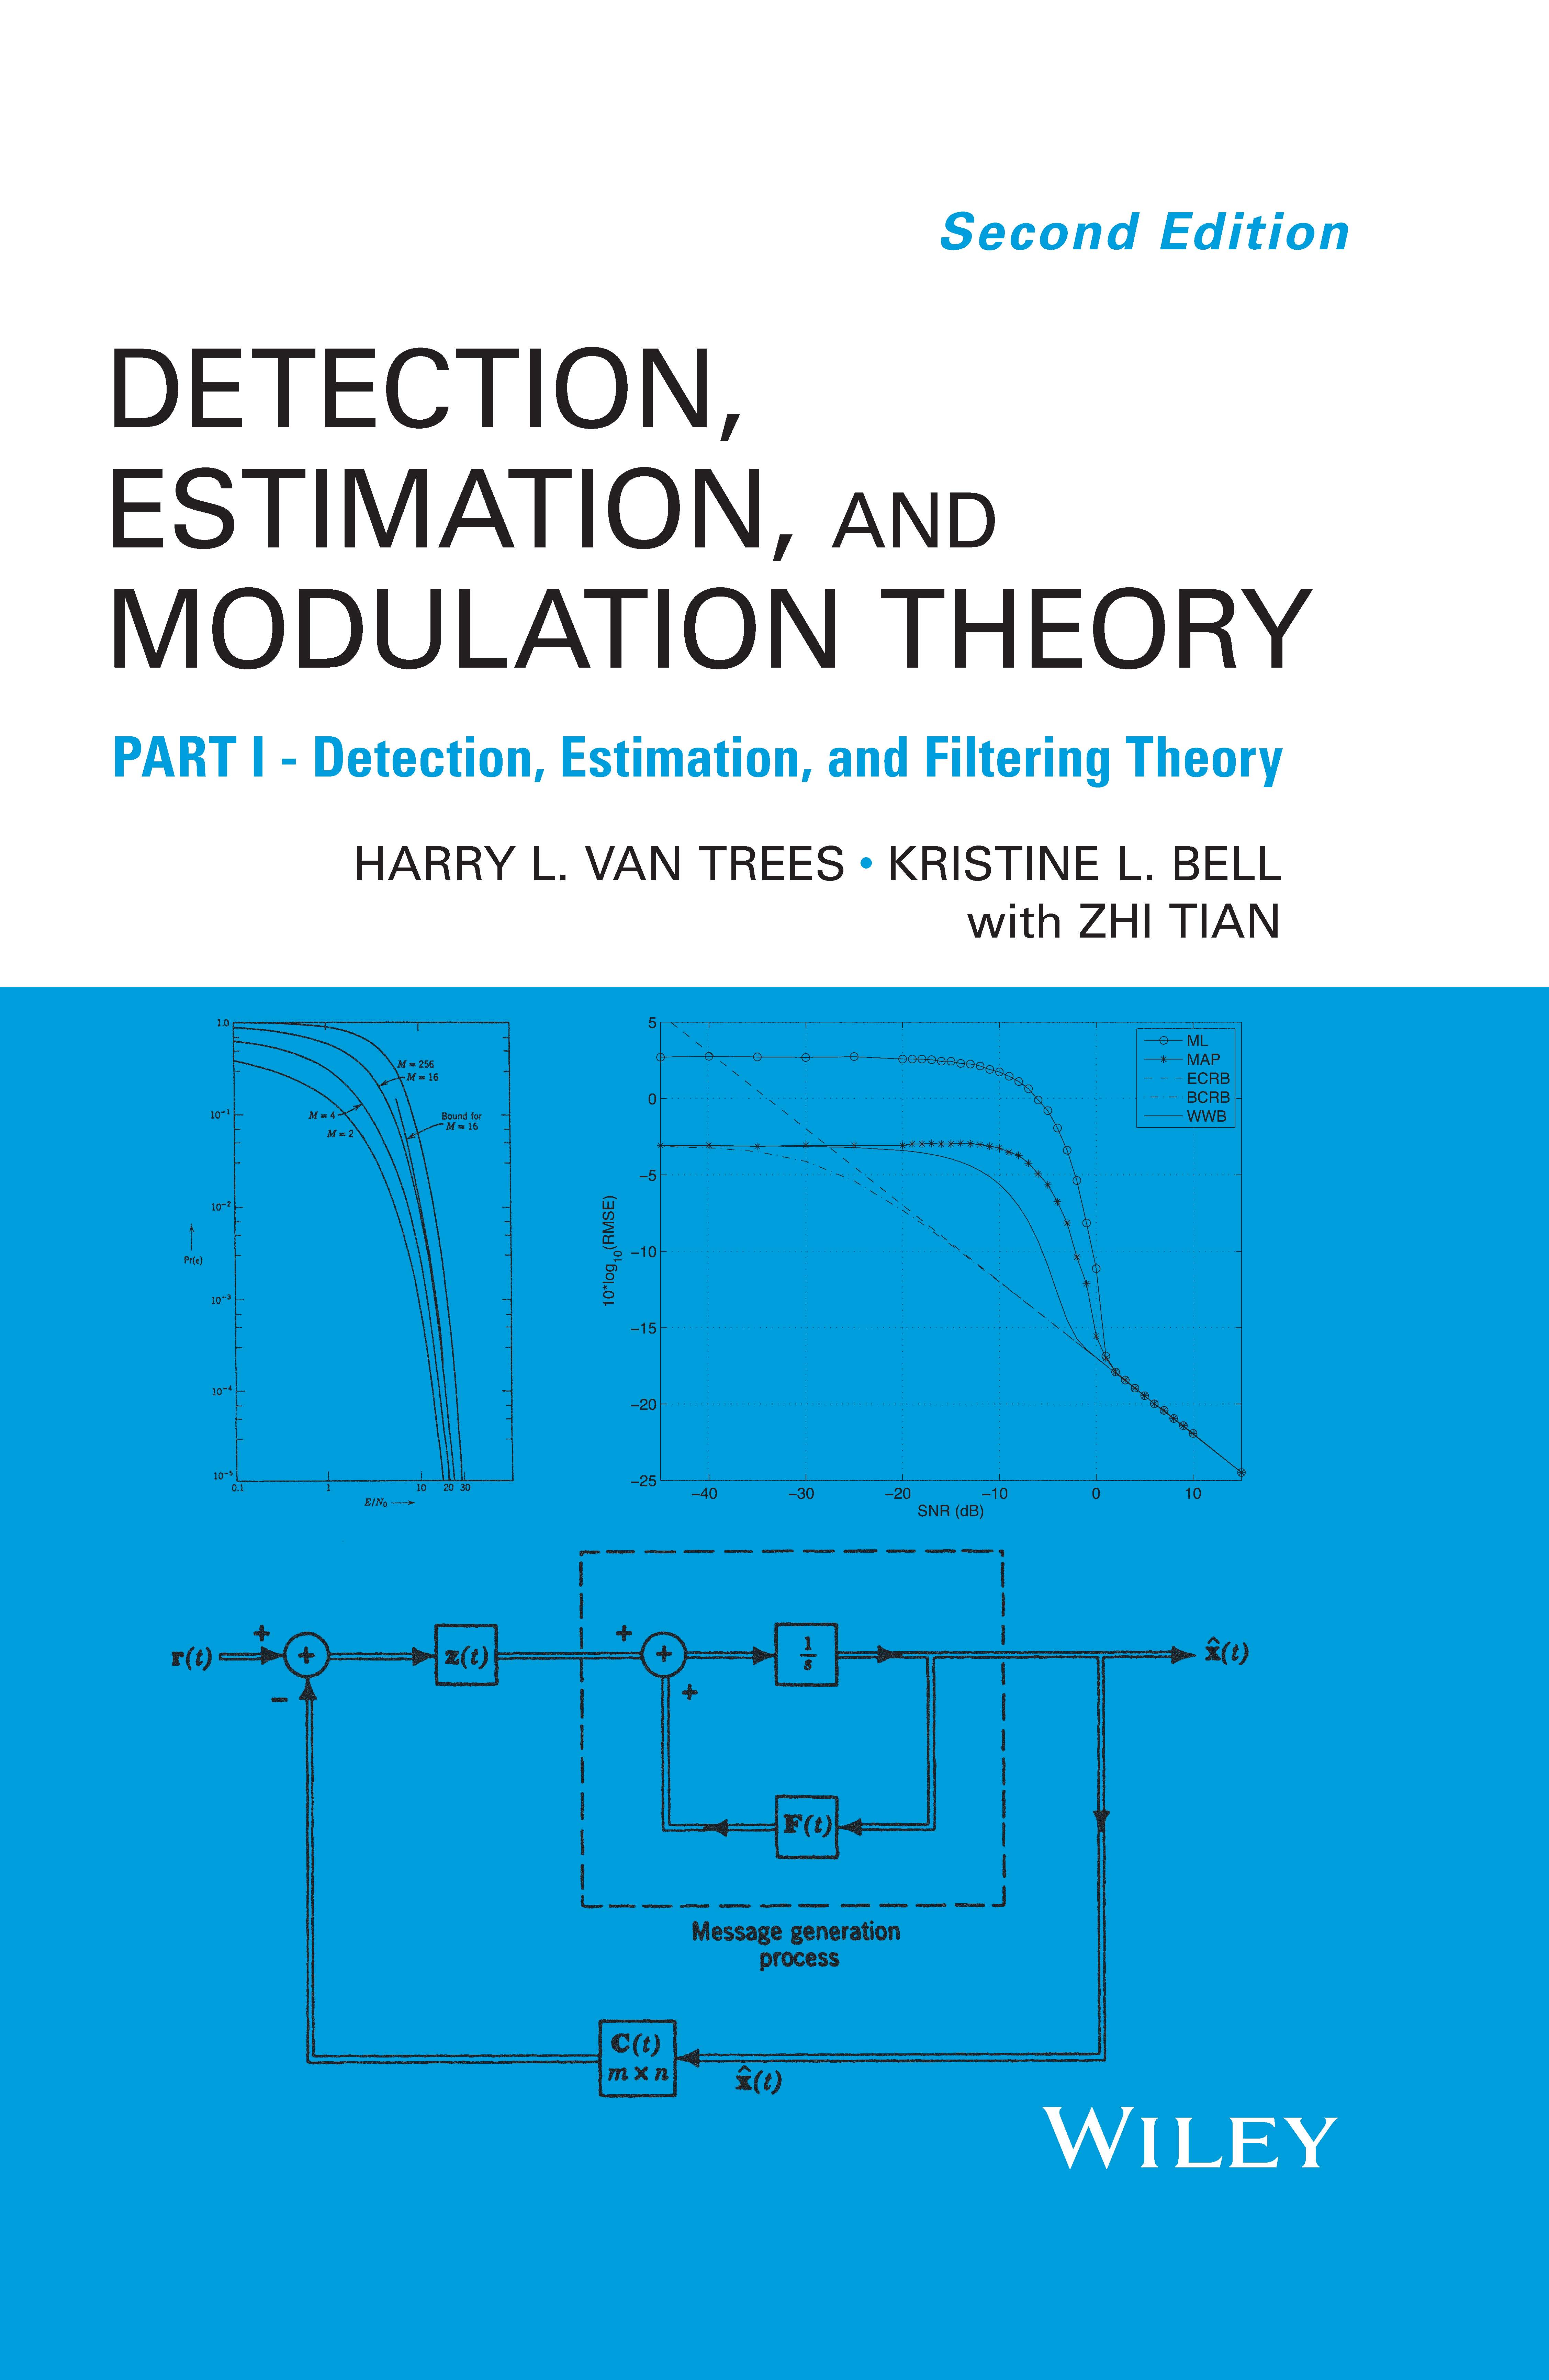 detection estimation and modulation theory van trees solution manual